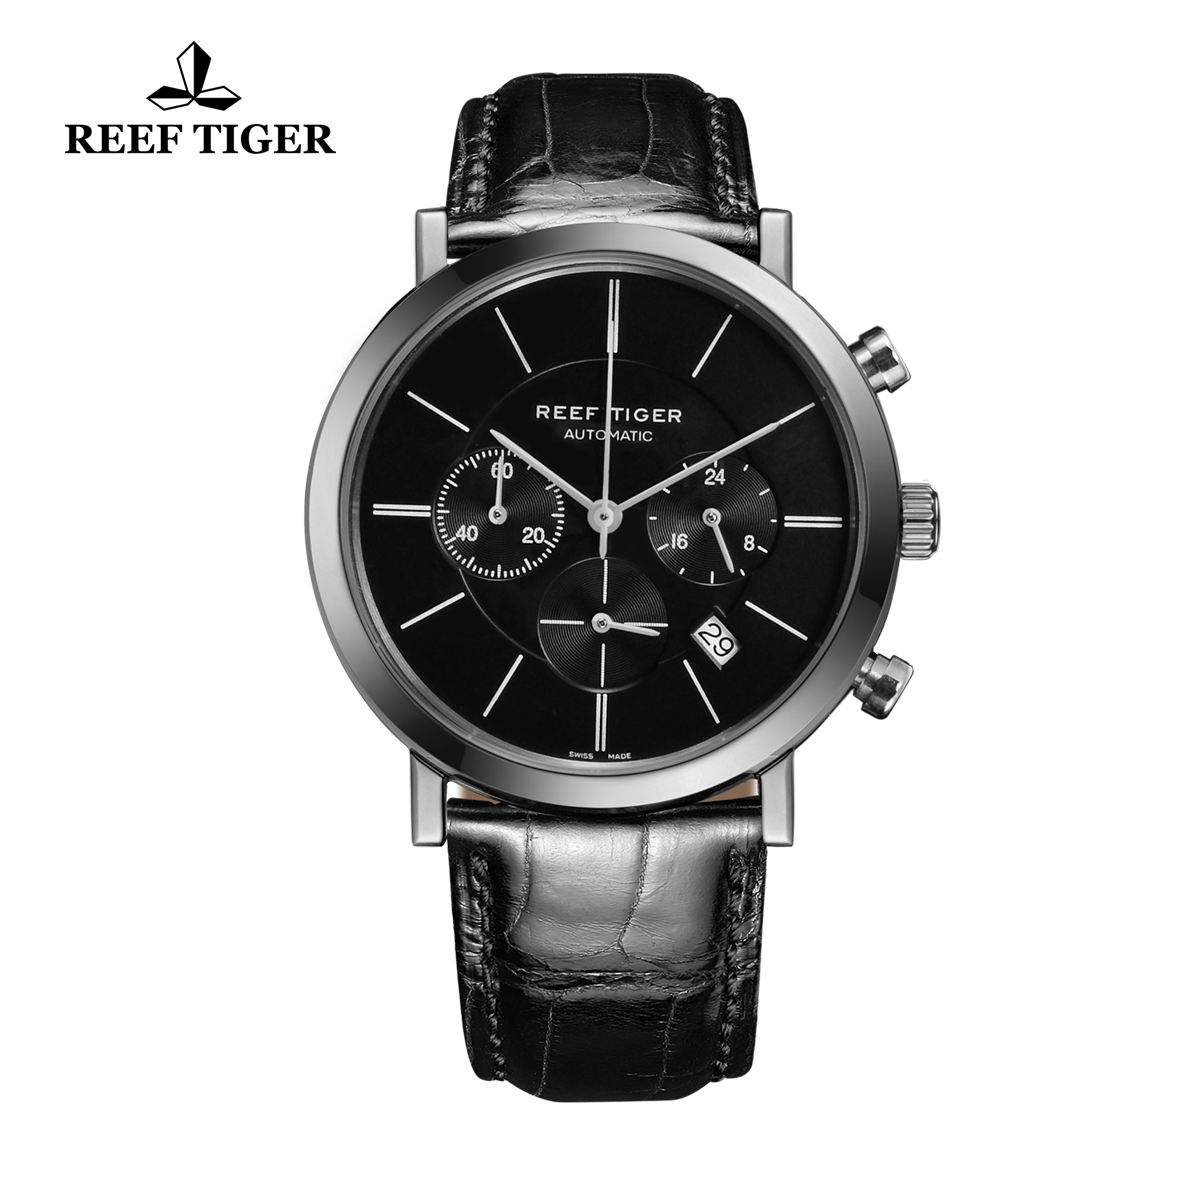 Reef Tiger Business Watch Ultra Thin Stainless Steel Black Dial Chronograph Quartz Watch RGA162-YBB